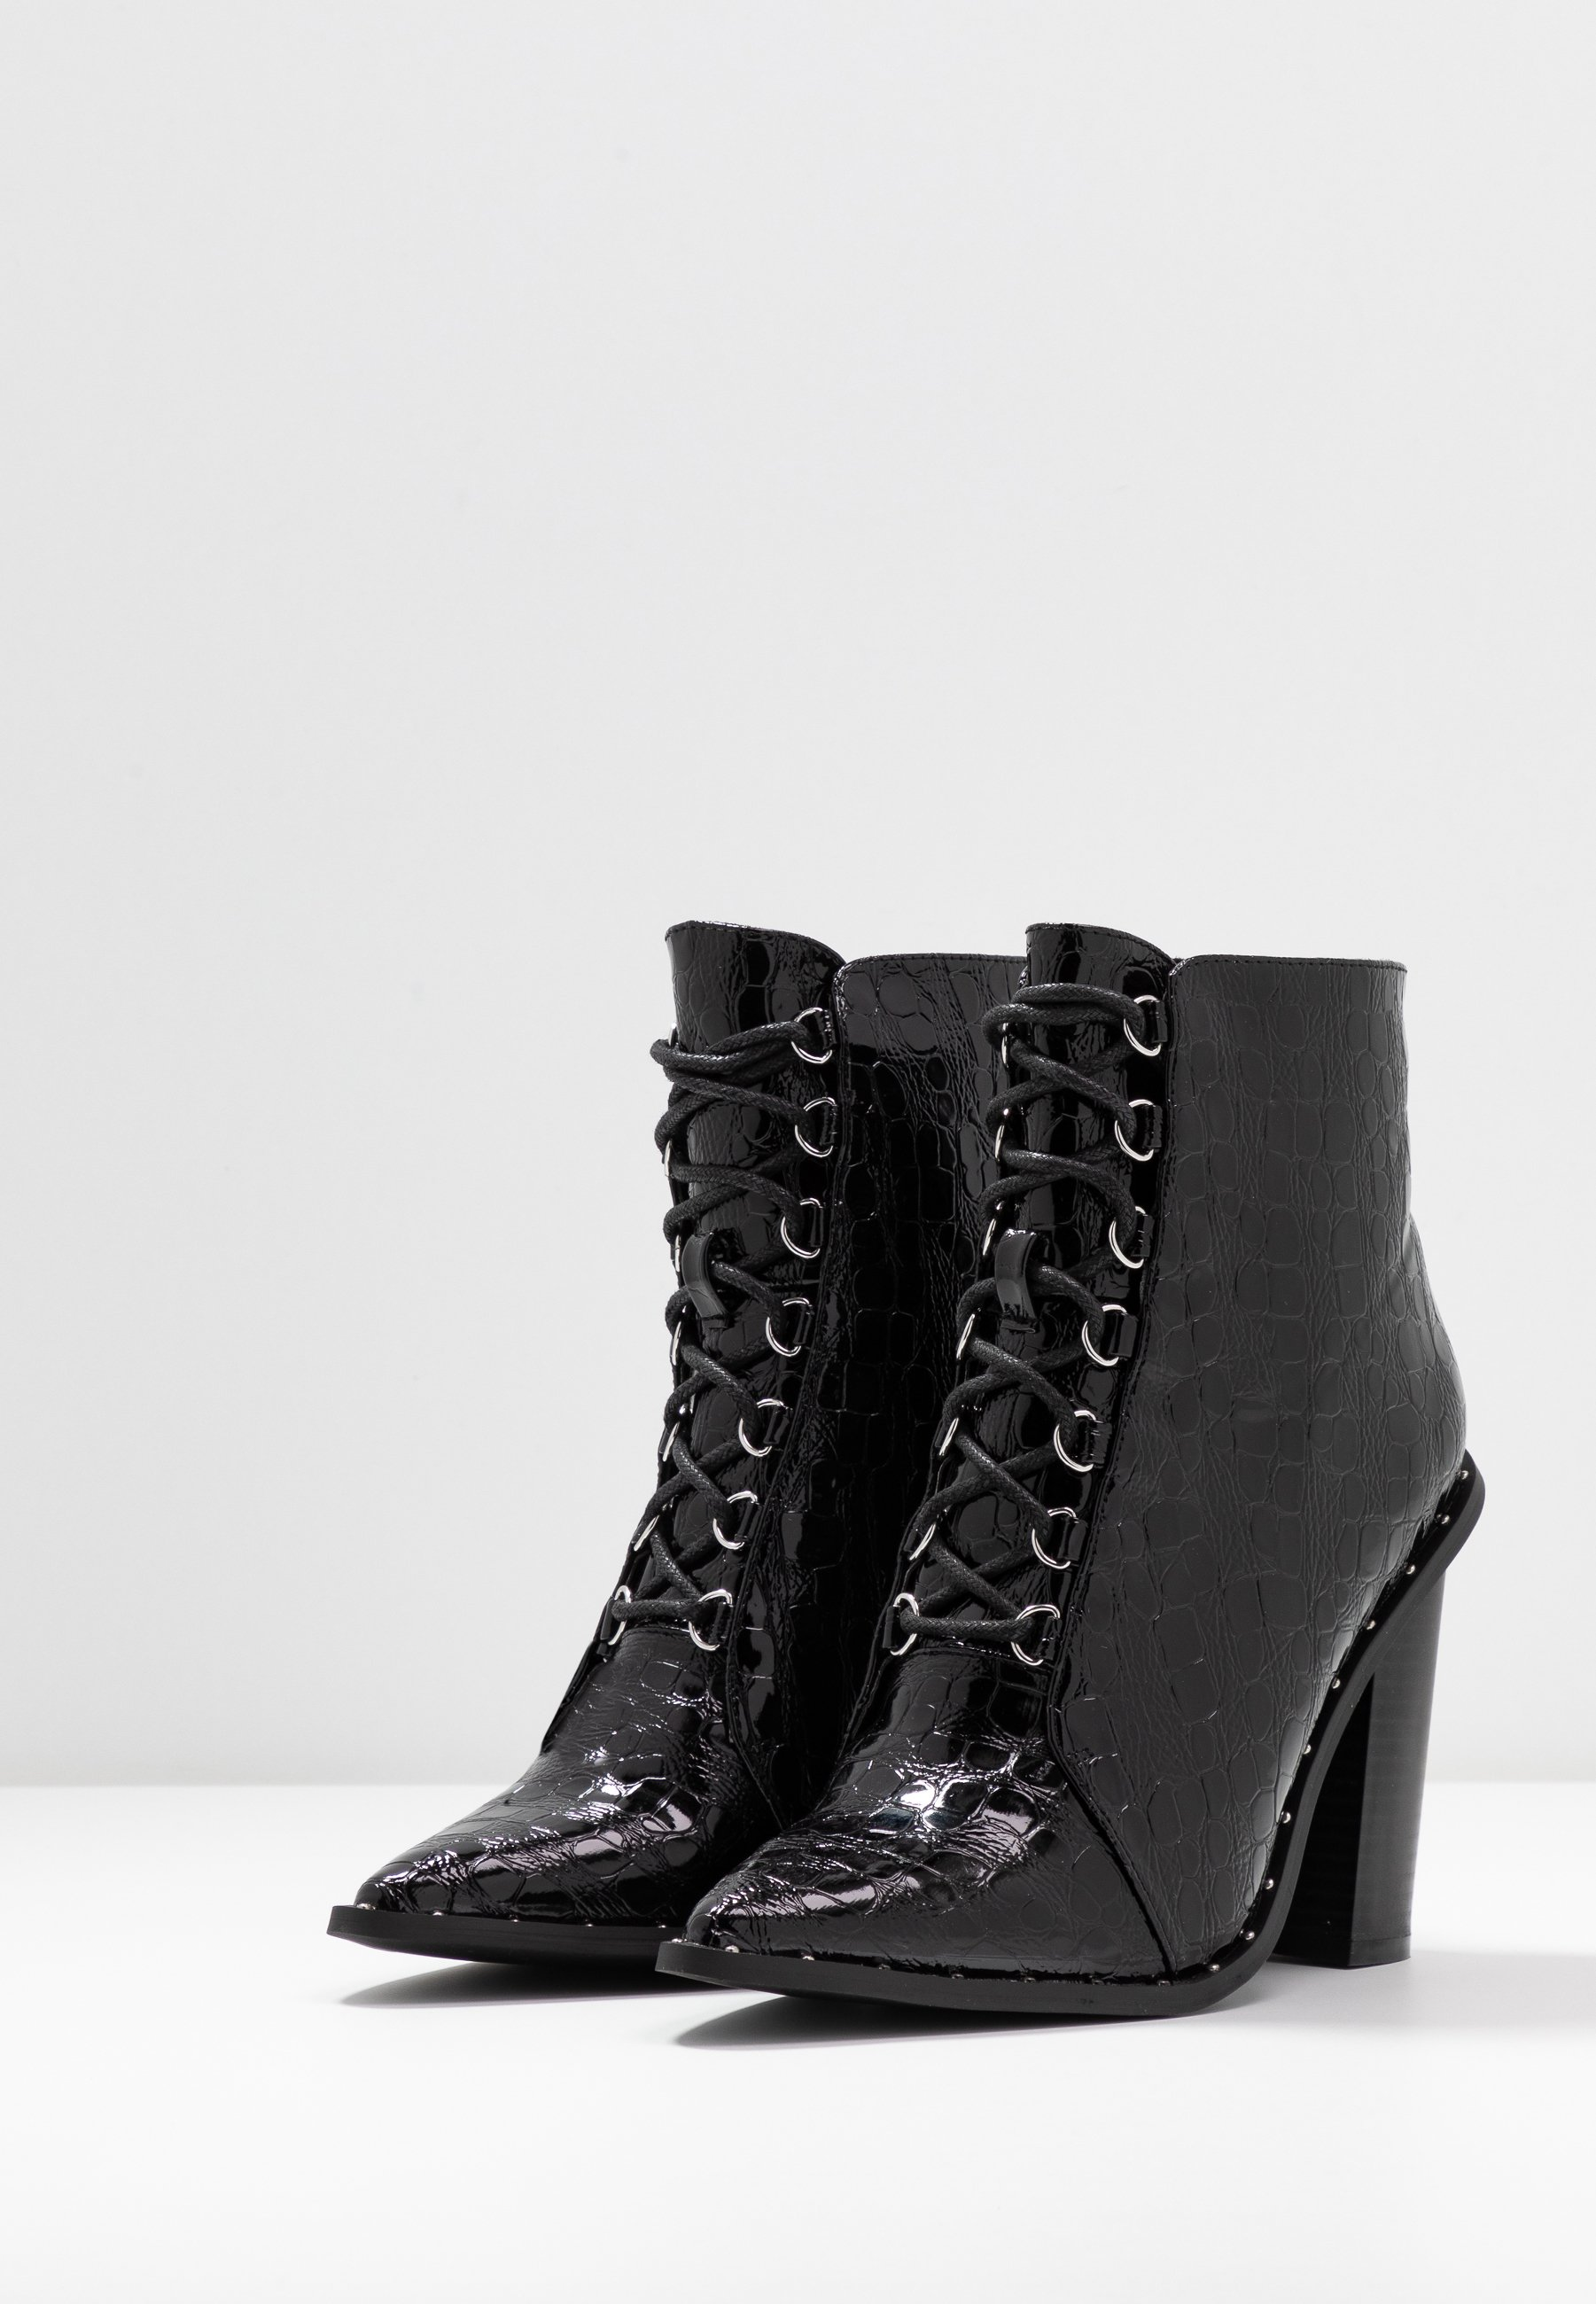 Missguided STUDDED CROC LACE UP  - Bottines à talons hauts - black - Chaussures à talons femme Pas cher